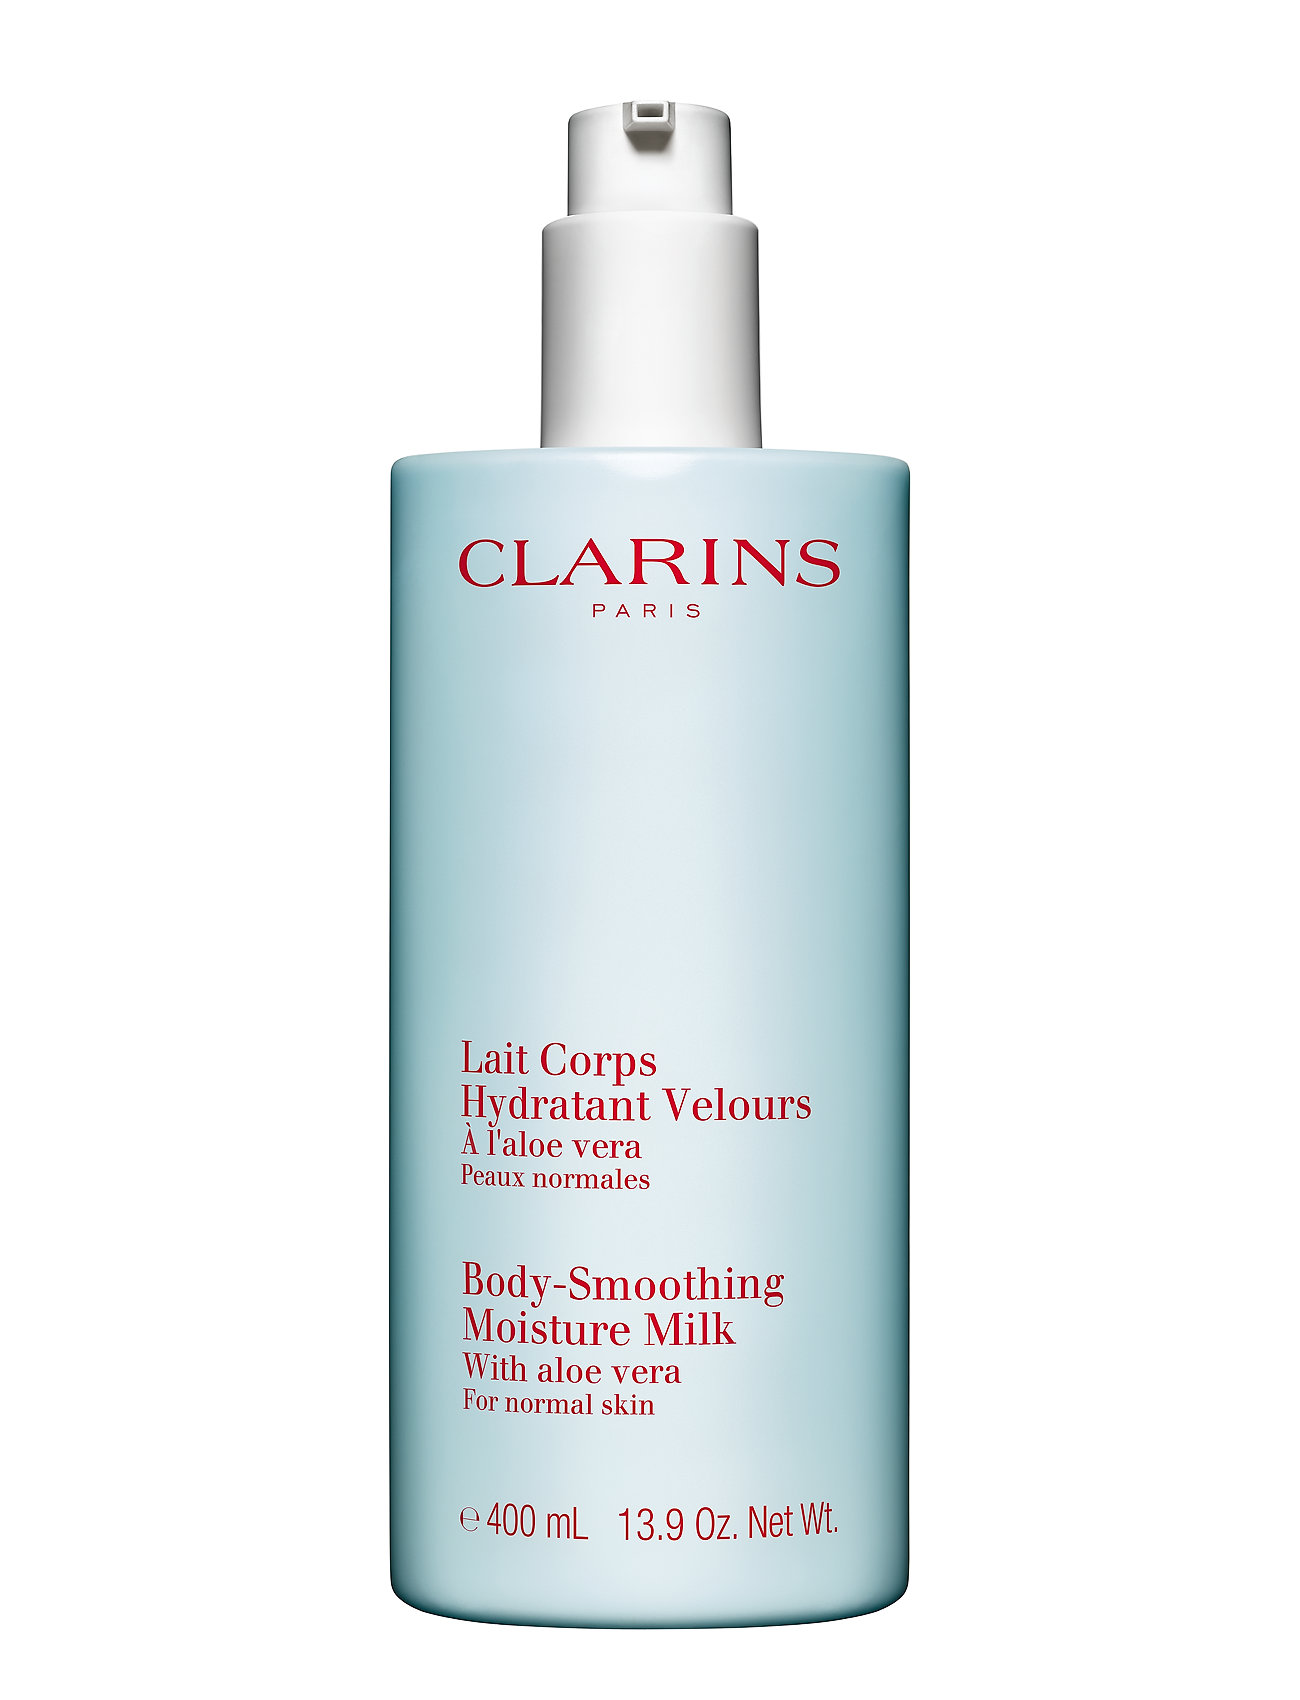 Clarins HYDRATING BODY-SMOOTHING MOISTURE MILK - CLEAR